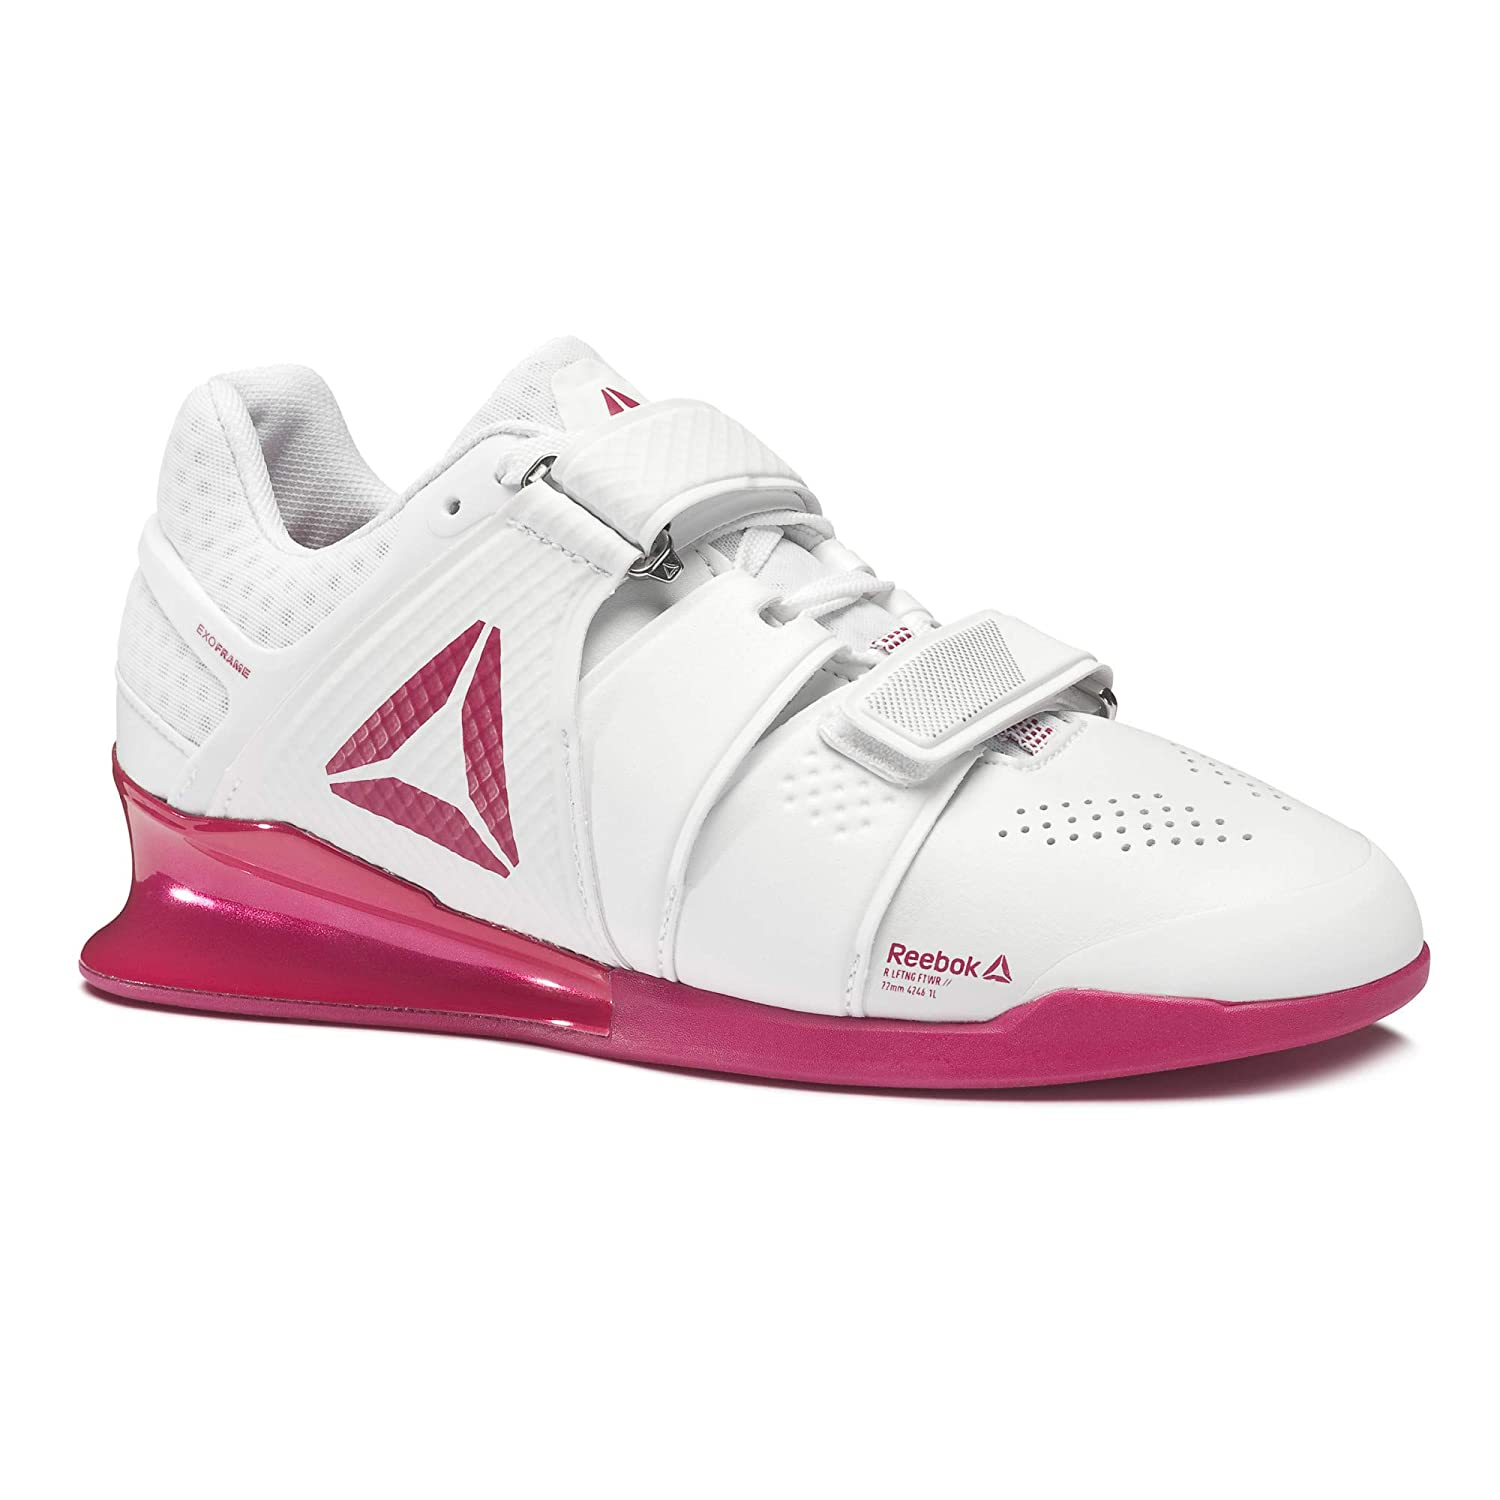 803b535df21 Reebok womens legacy lifter training shoes us white rugged rose silver  fitness cross training jpg 1500x1500